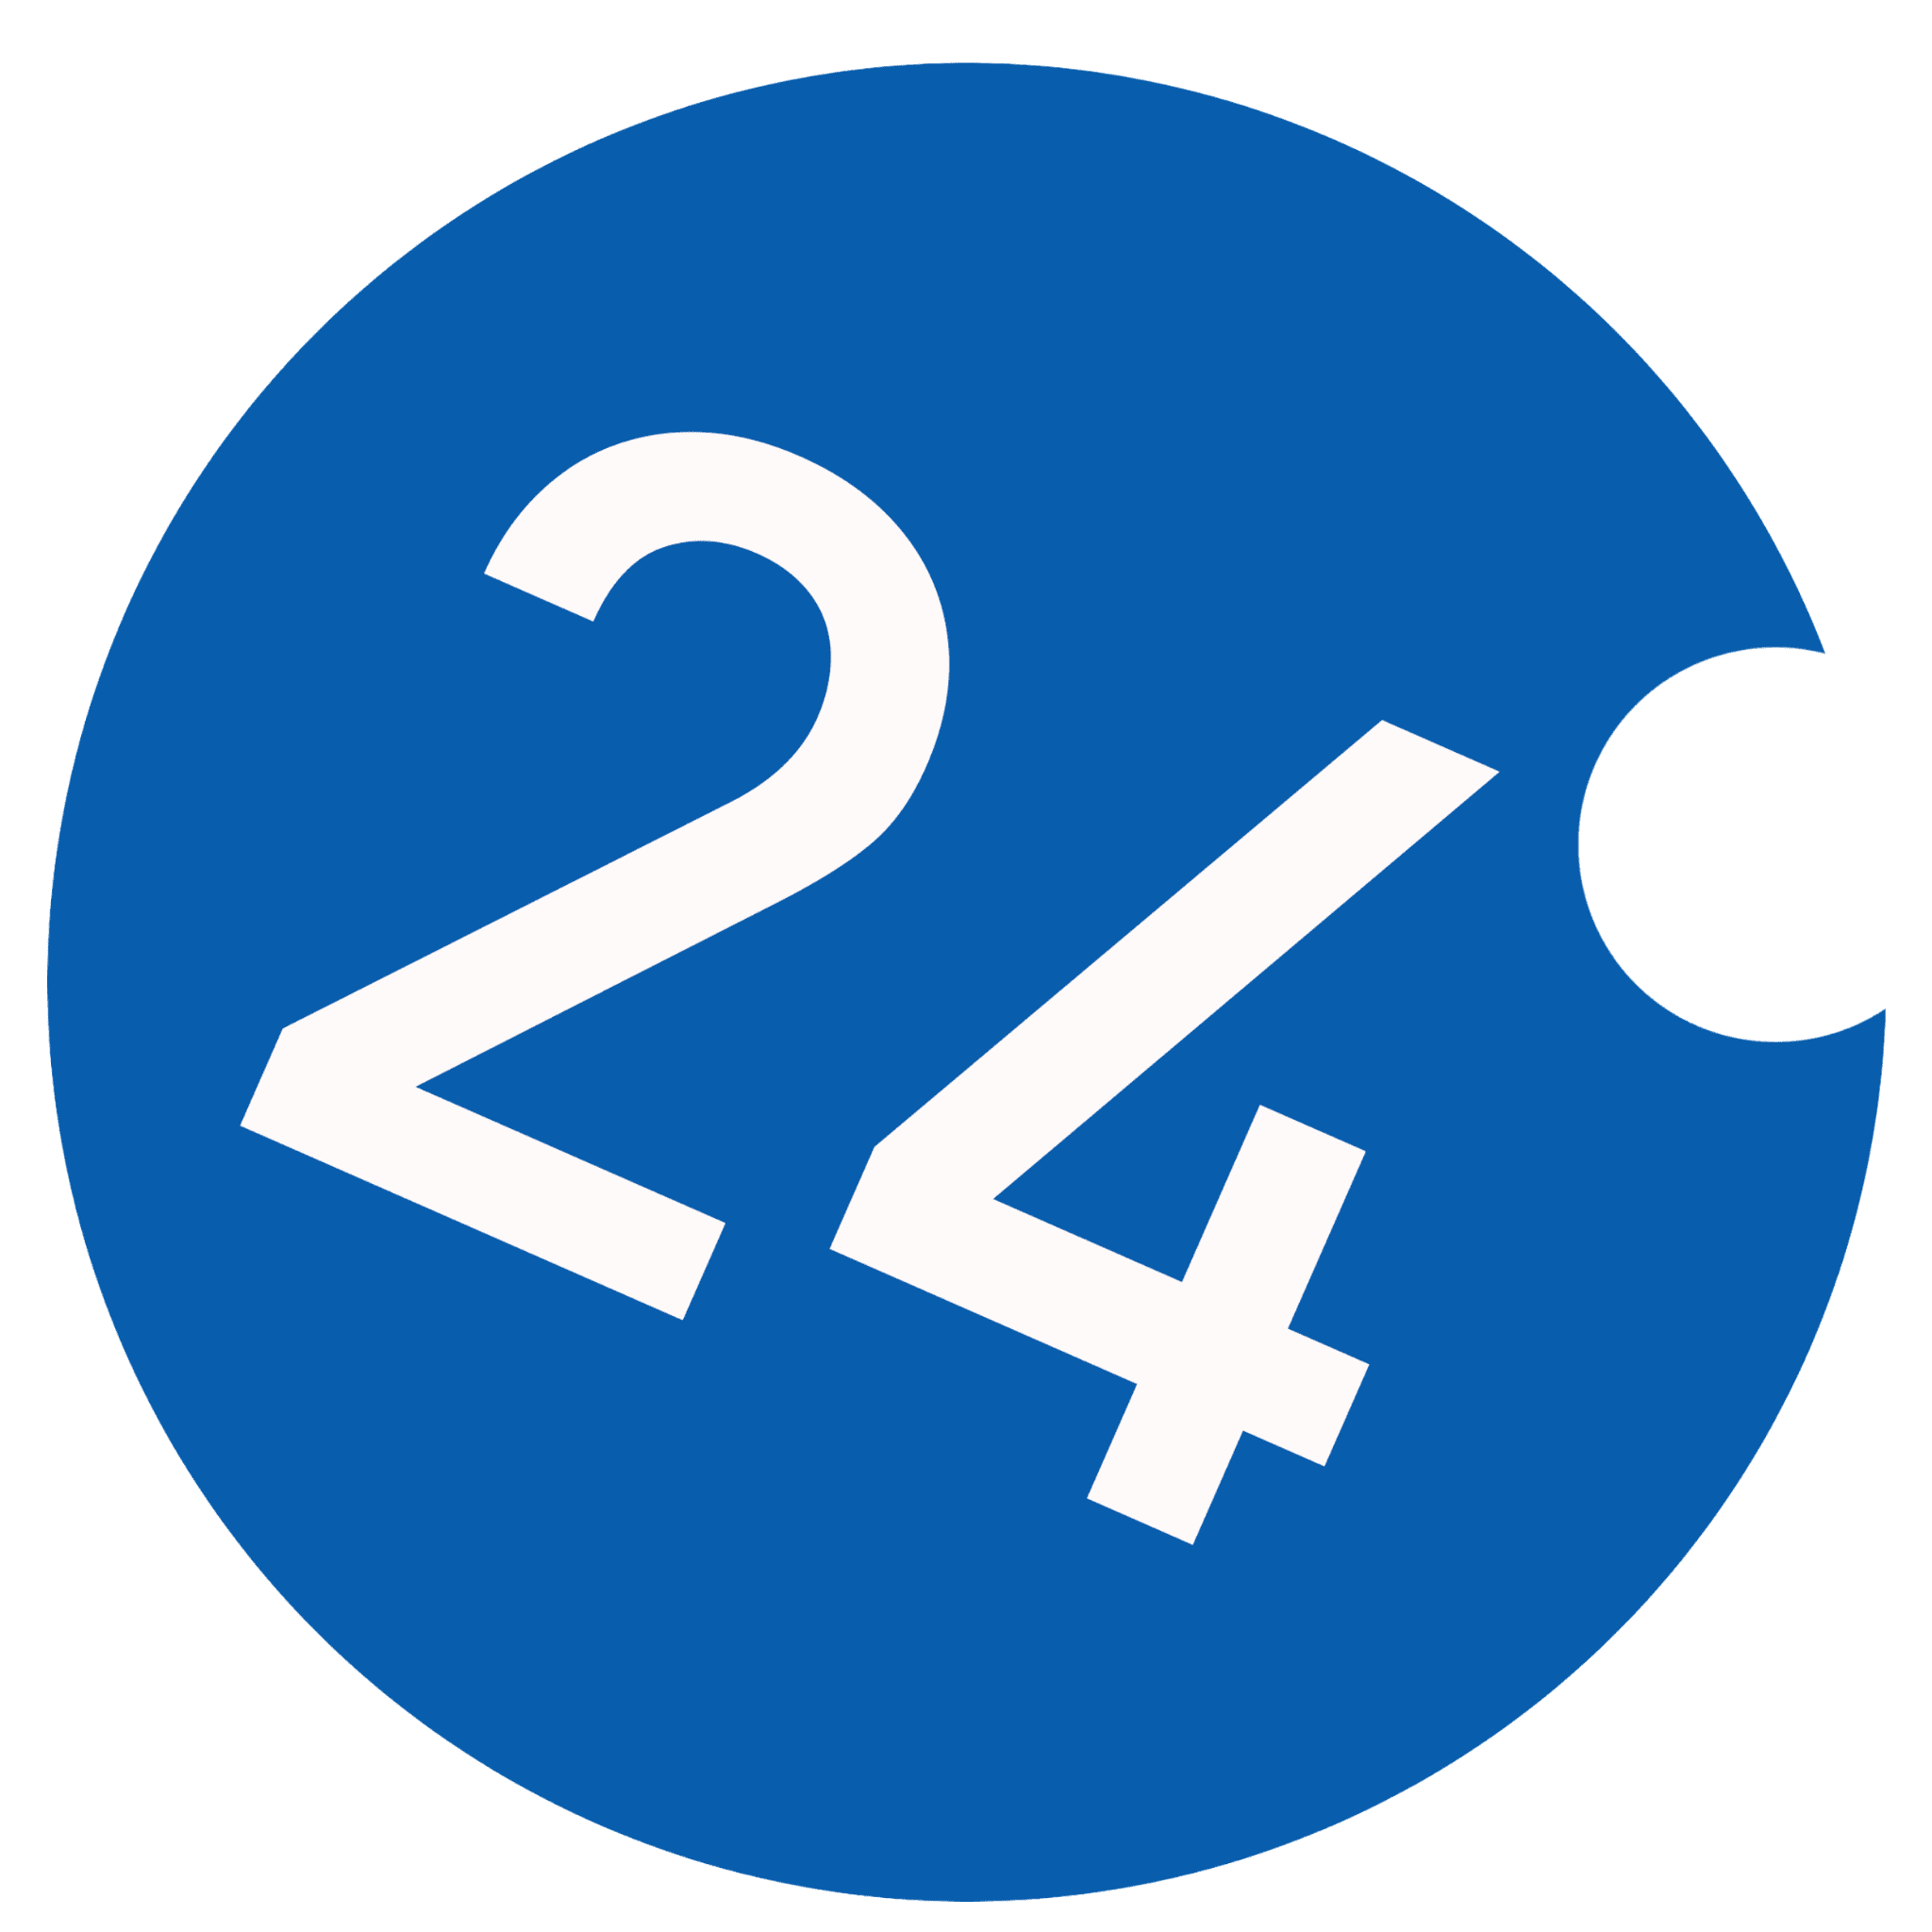 24 Degrees logo